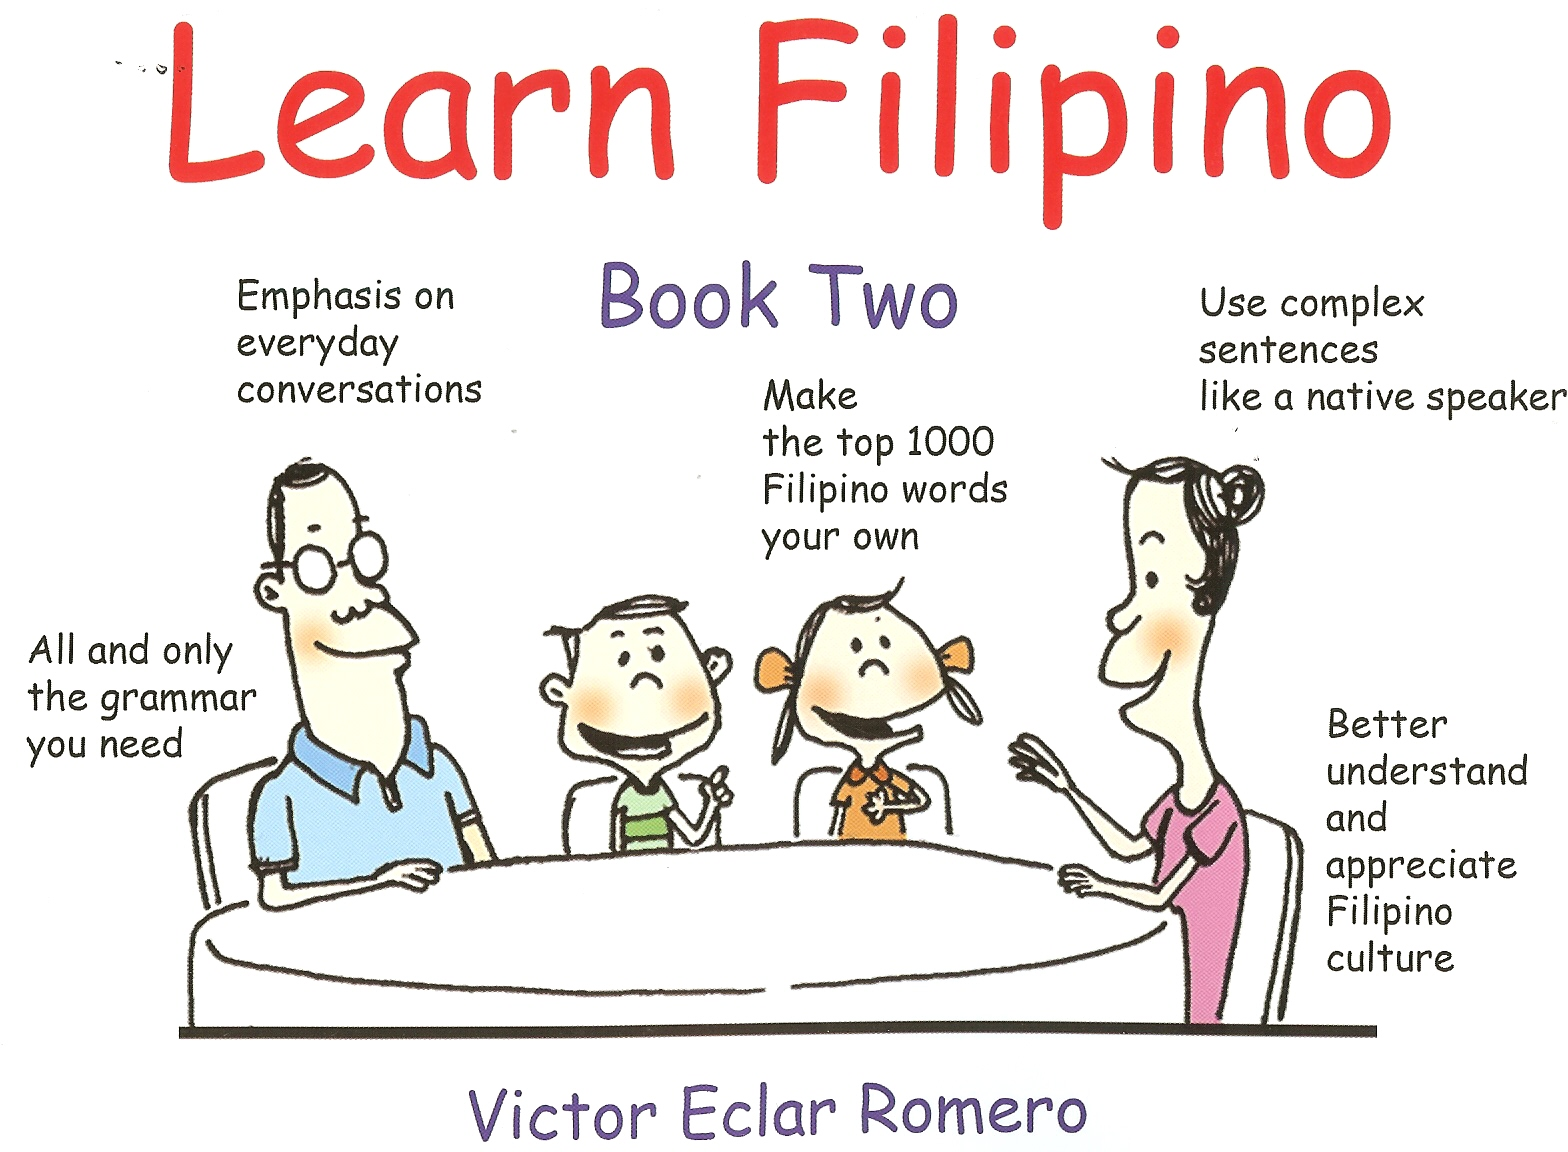 How to Speak Tagalog: 14 Steps (with Pictures) - wikiHow